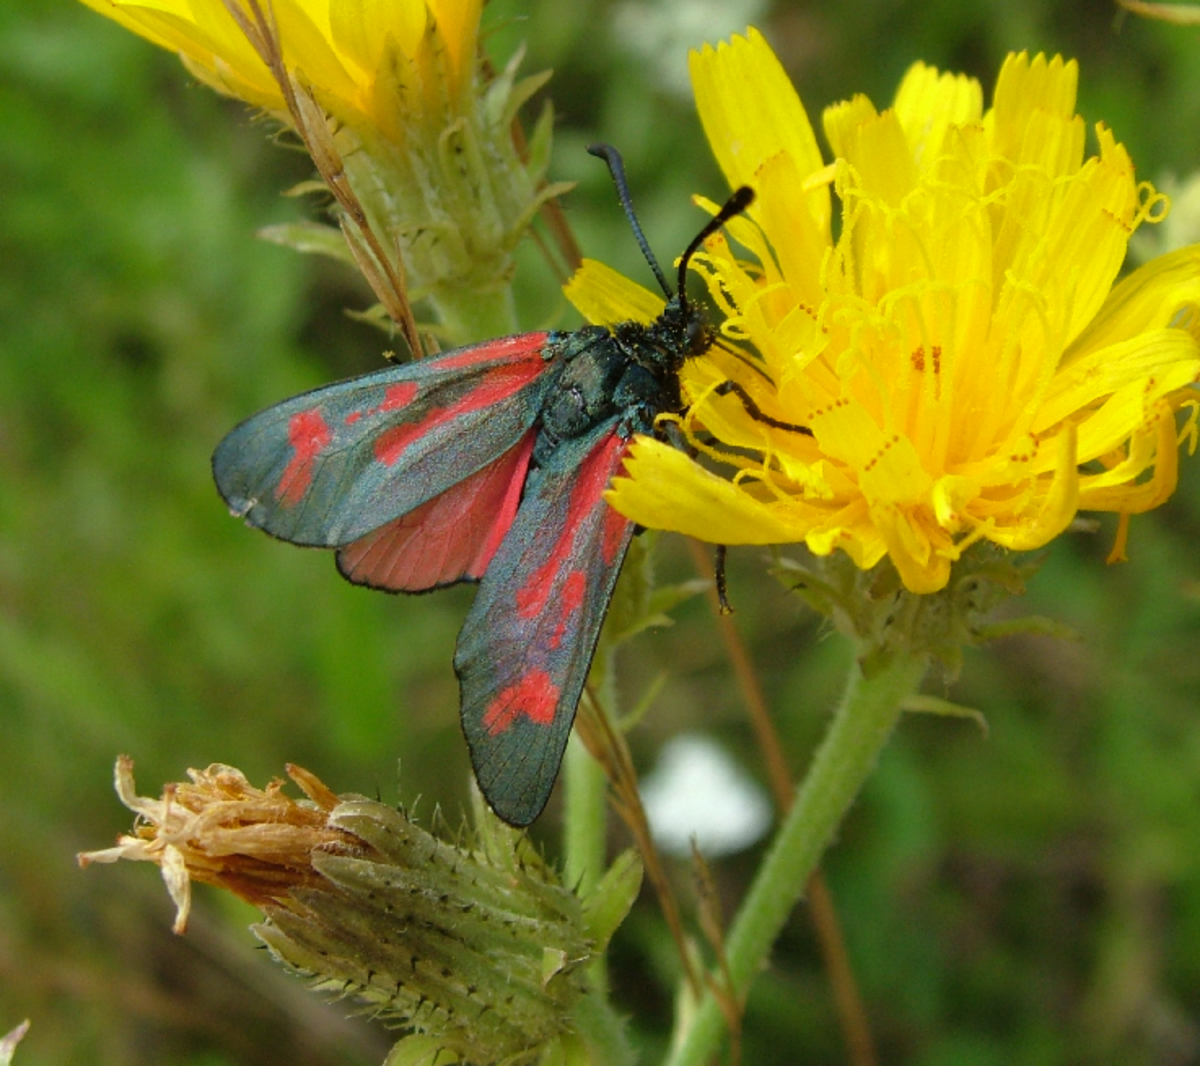 Red Butterfly and Yellow Flower